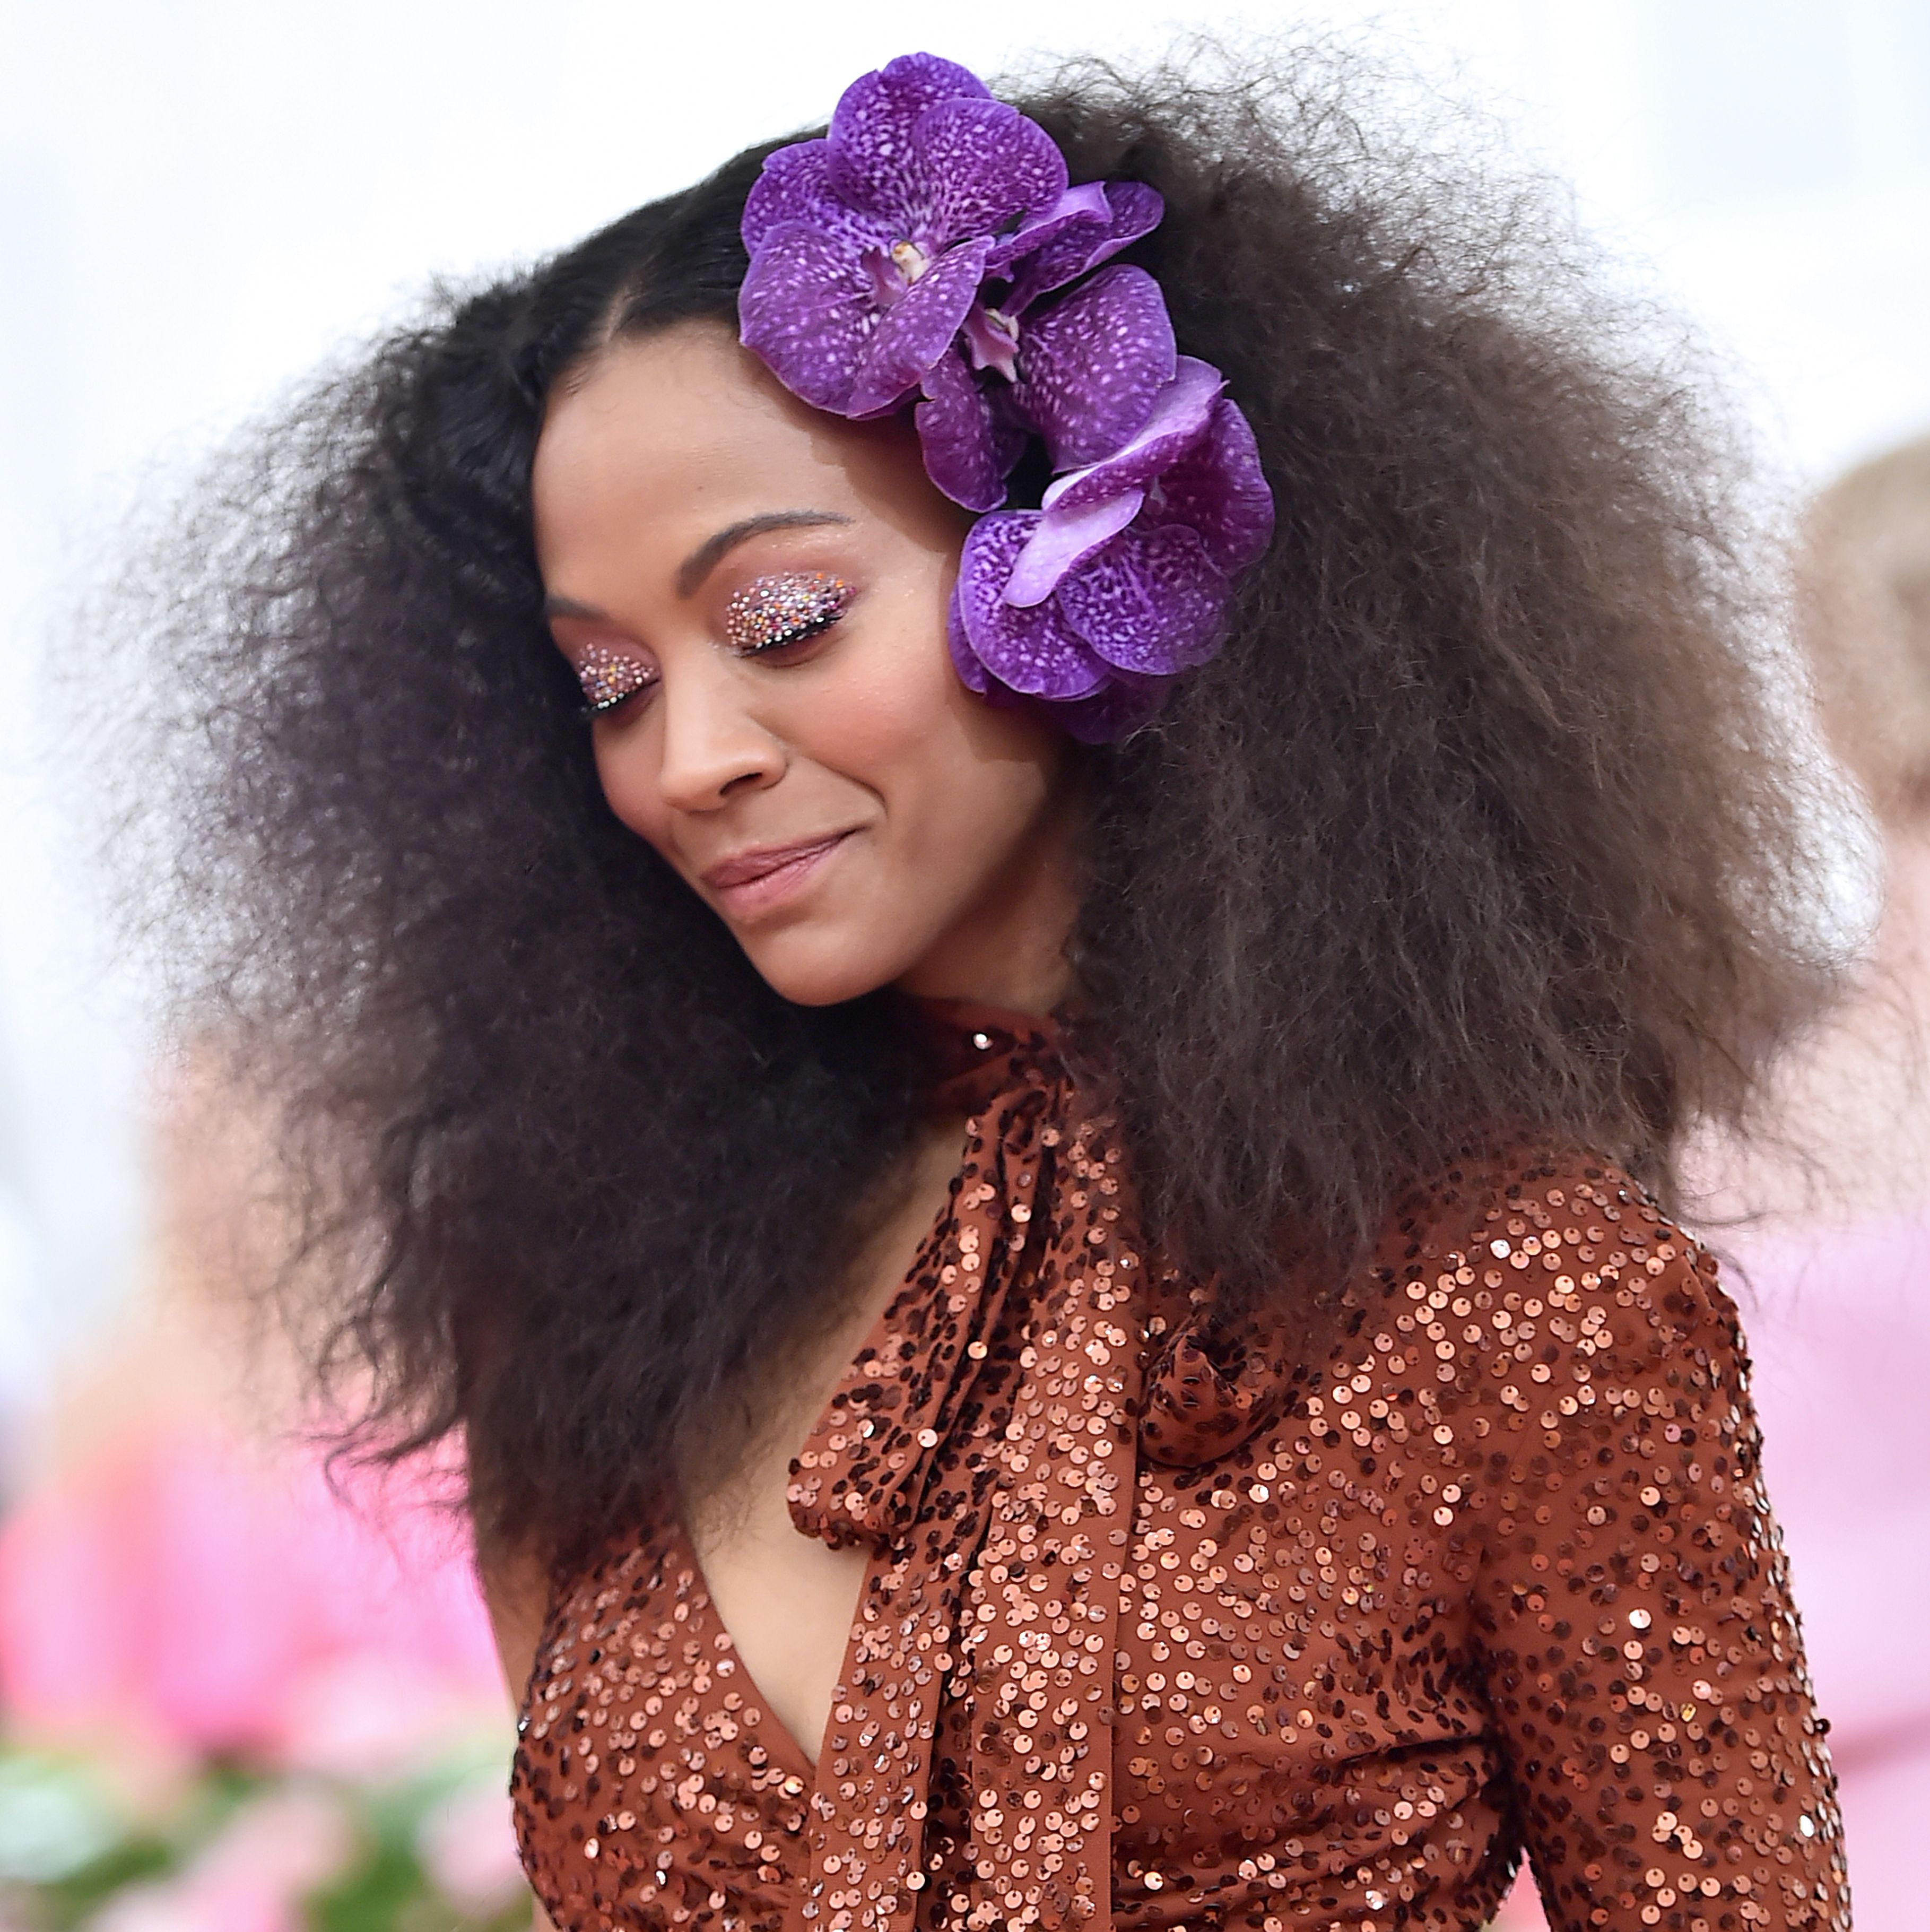 Zoe Saldana The actress looked glorious in brushed out curls and actual violet orchids in her hair. When she turned her eyes downward, you could see they had a gorgeous glitter overlay.